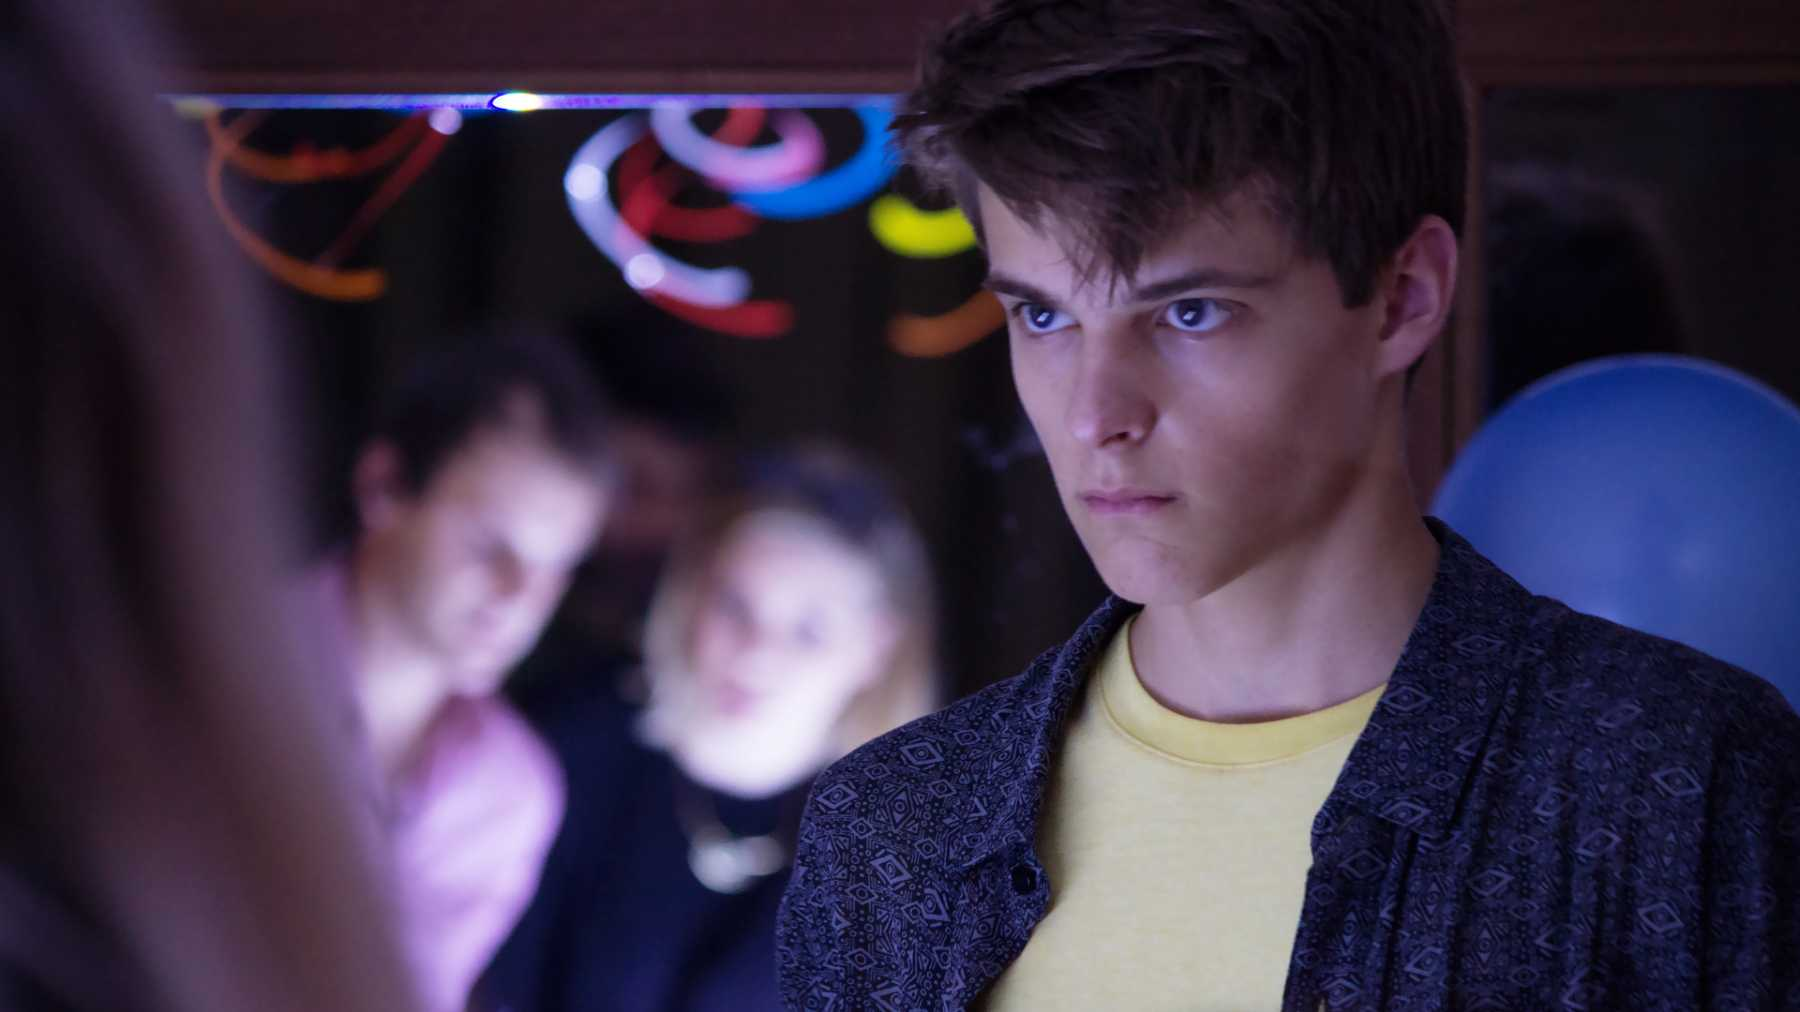 Corey Fogelmanis Cast As Lead In 'PrankMe' On Fullscreen | Corey Fogelmanis